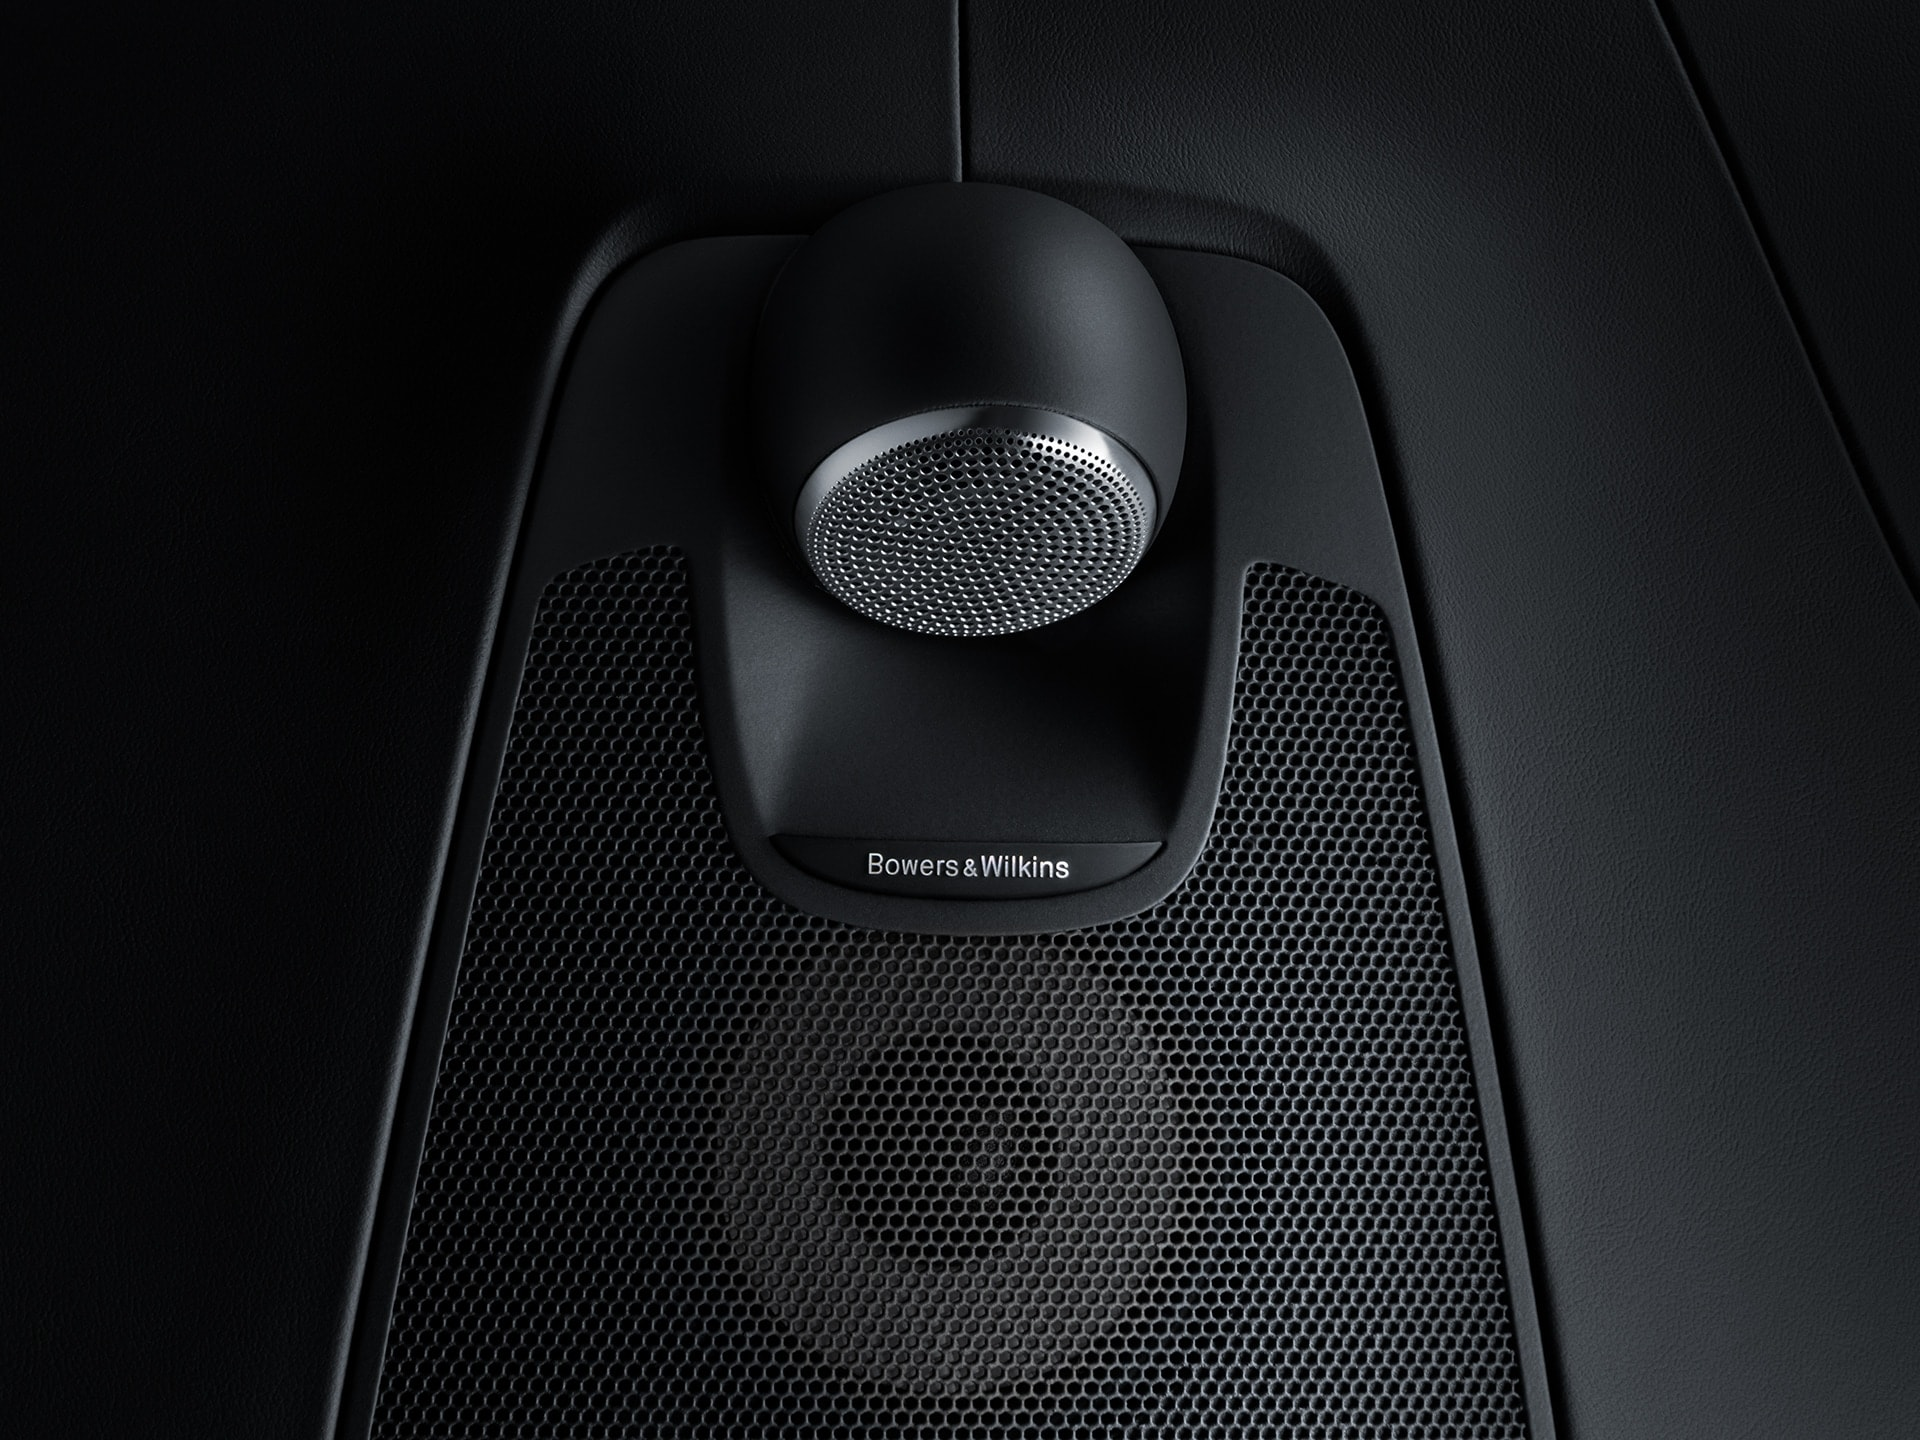 Bowers & Wilkins audio system inside a Volvo XC60